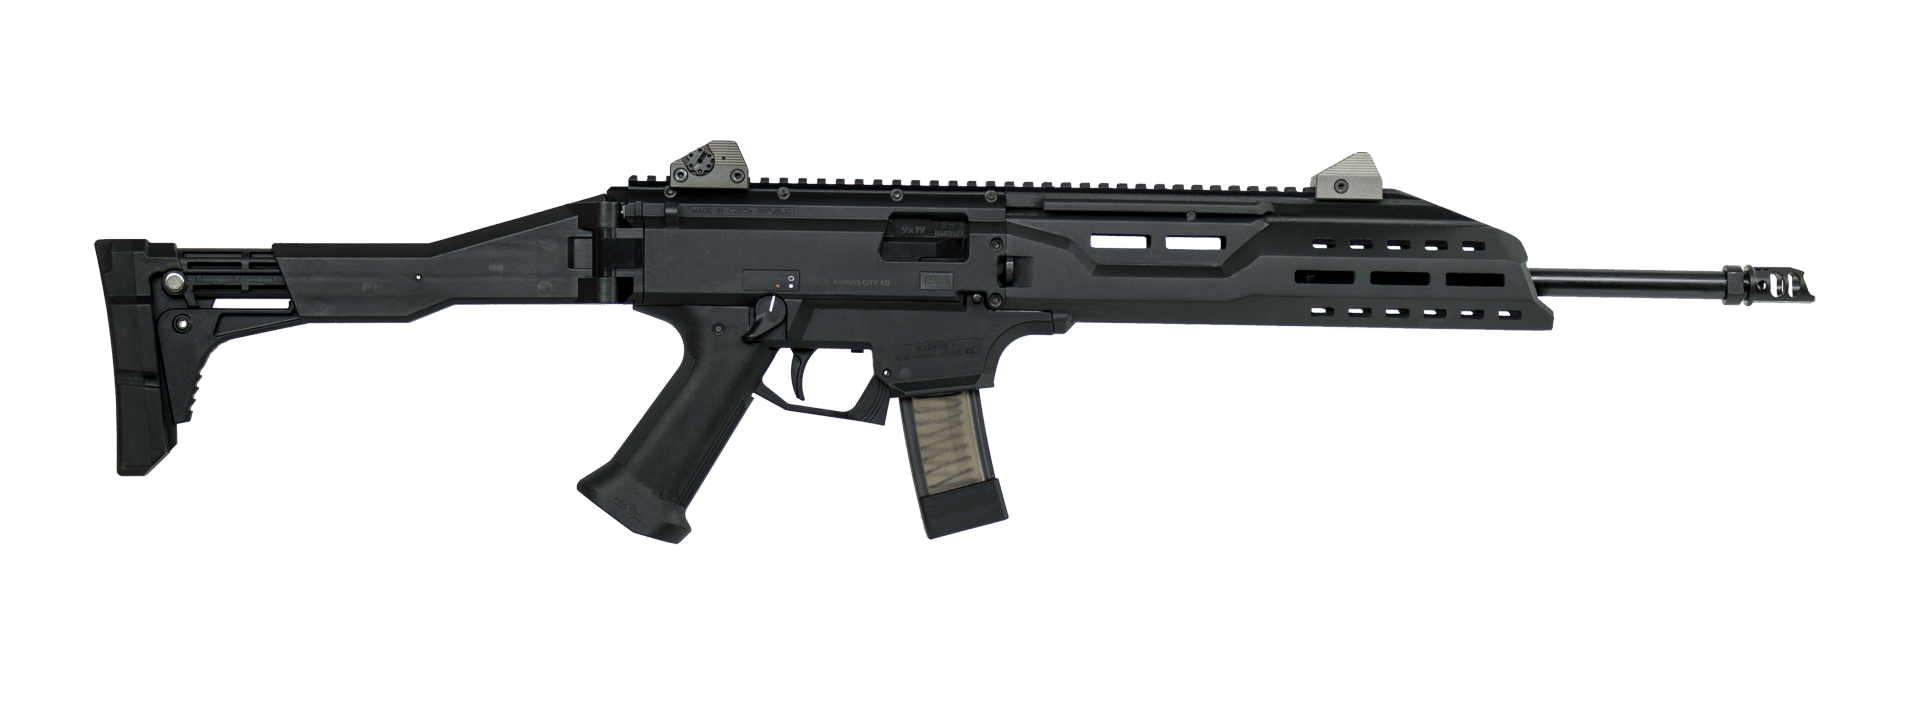 "CZ Scorpion EVO 3 S1 16""Carbine Rifle, 9mm, Black - 08505"